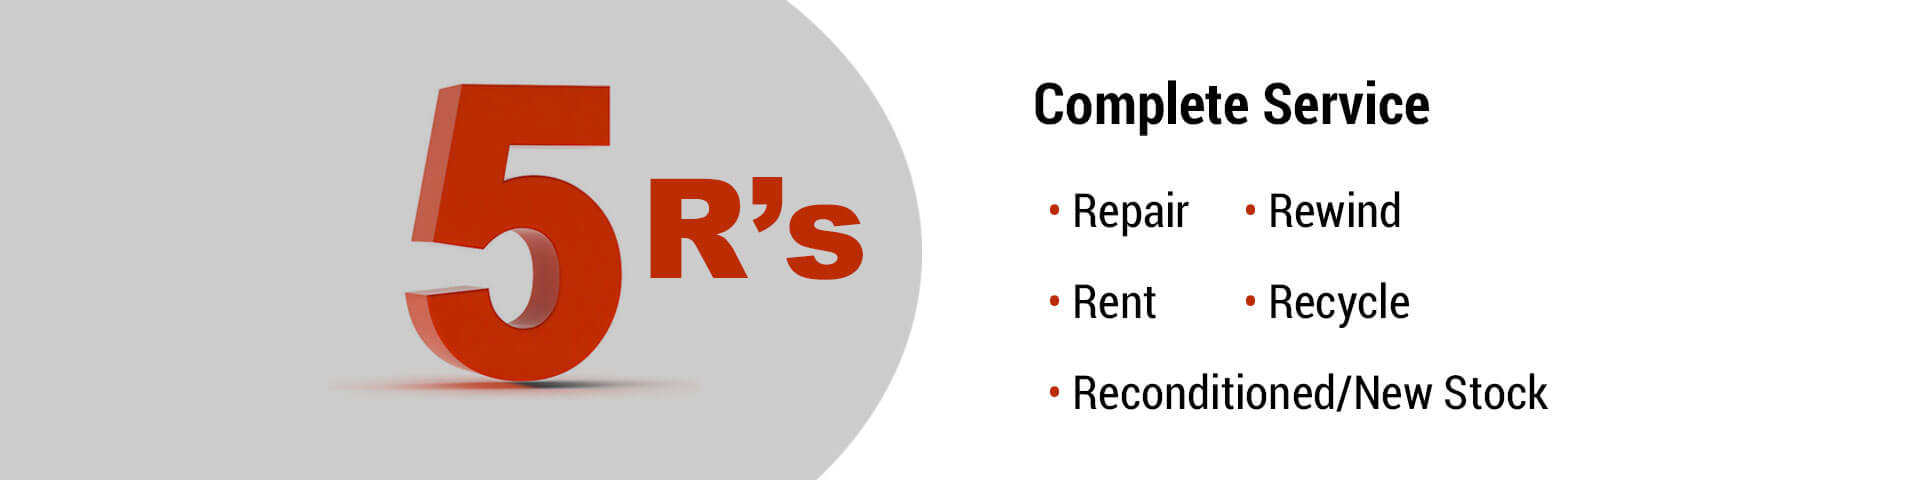 5R's Complete Service: Repair, Rewind, Rent, Recycle, Reconditioned/New Stock